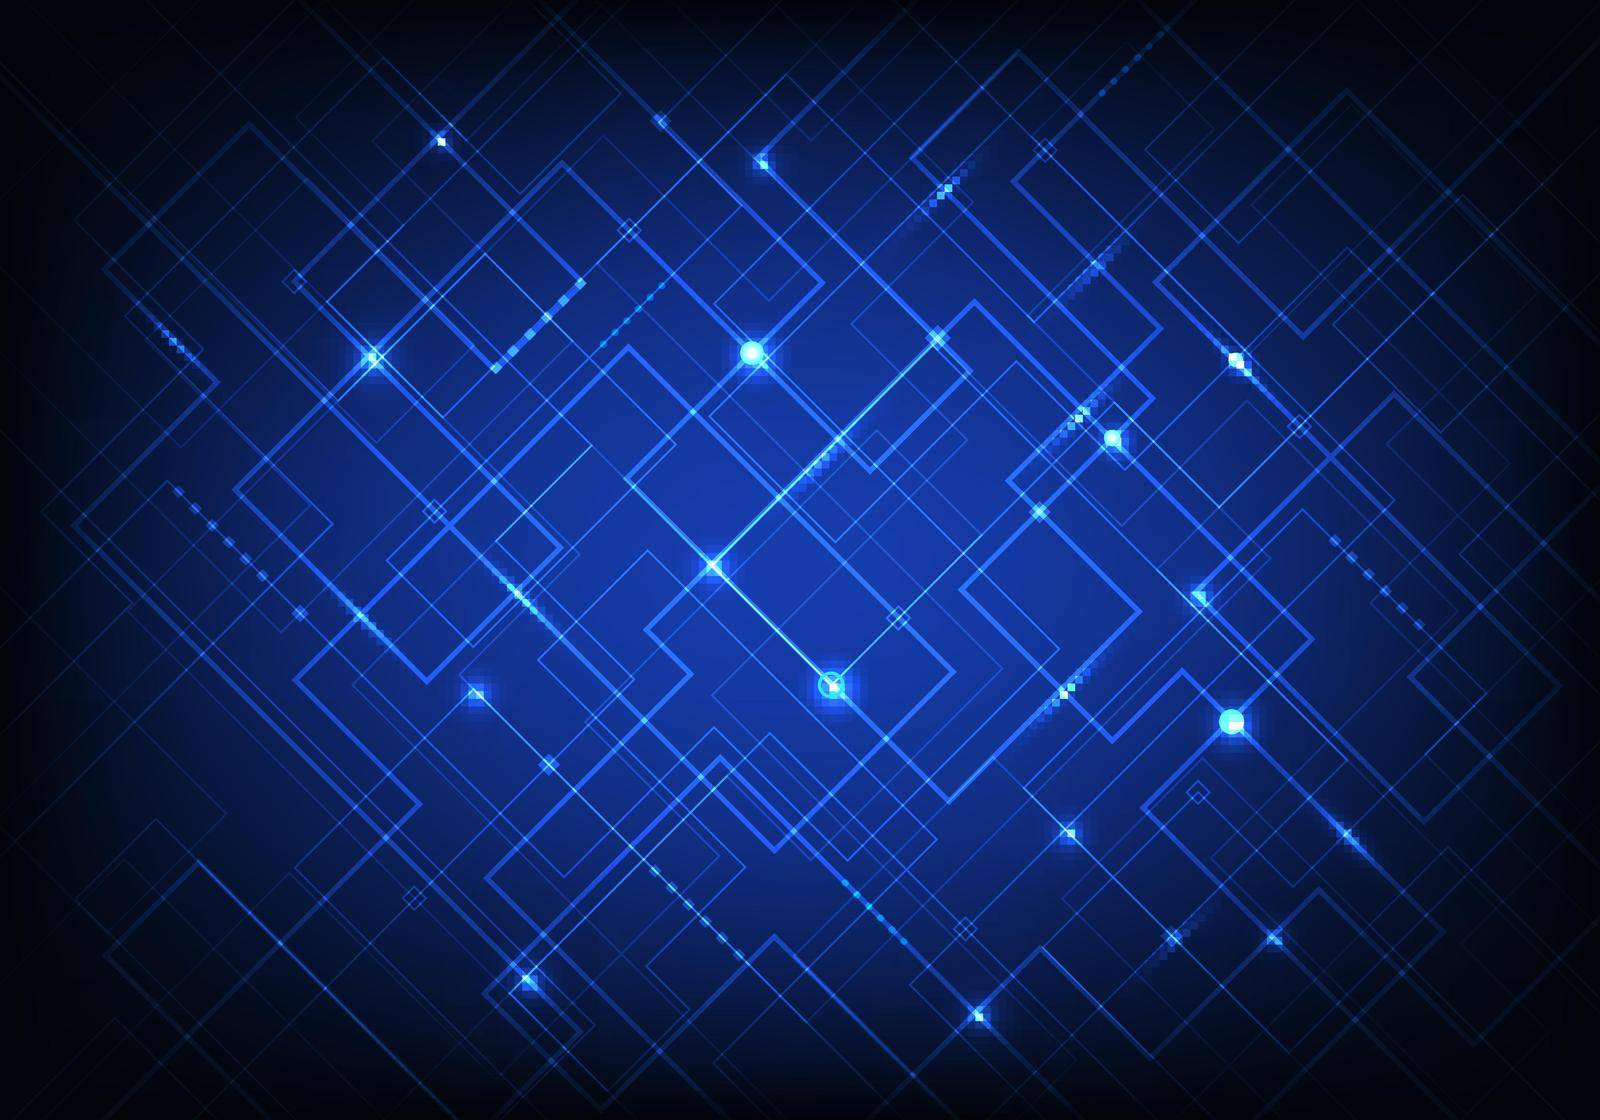 Abstract blue line grid pattern with light on dark blue background modern technology digital concept. You can use for science, tech of future, internet communication, etc. Vector illustration